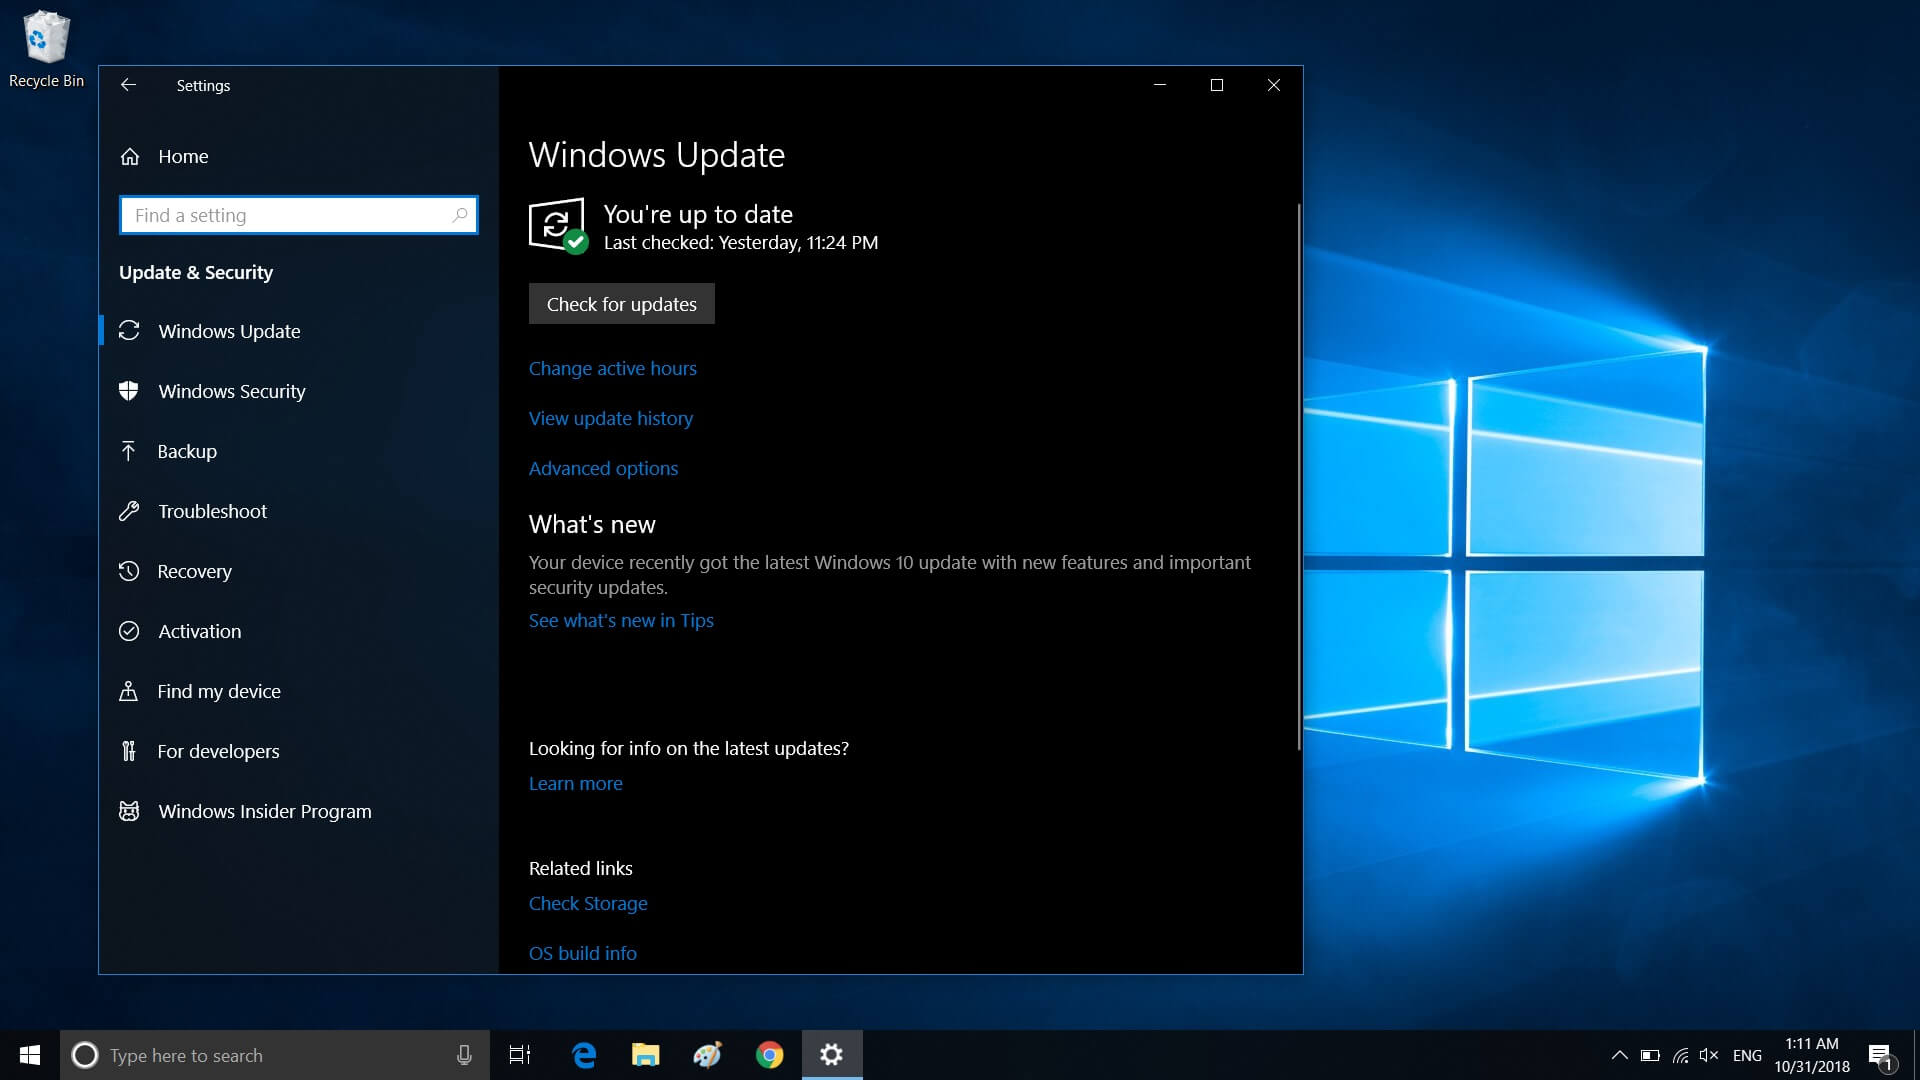 Windows 10 update check